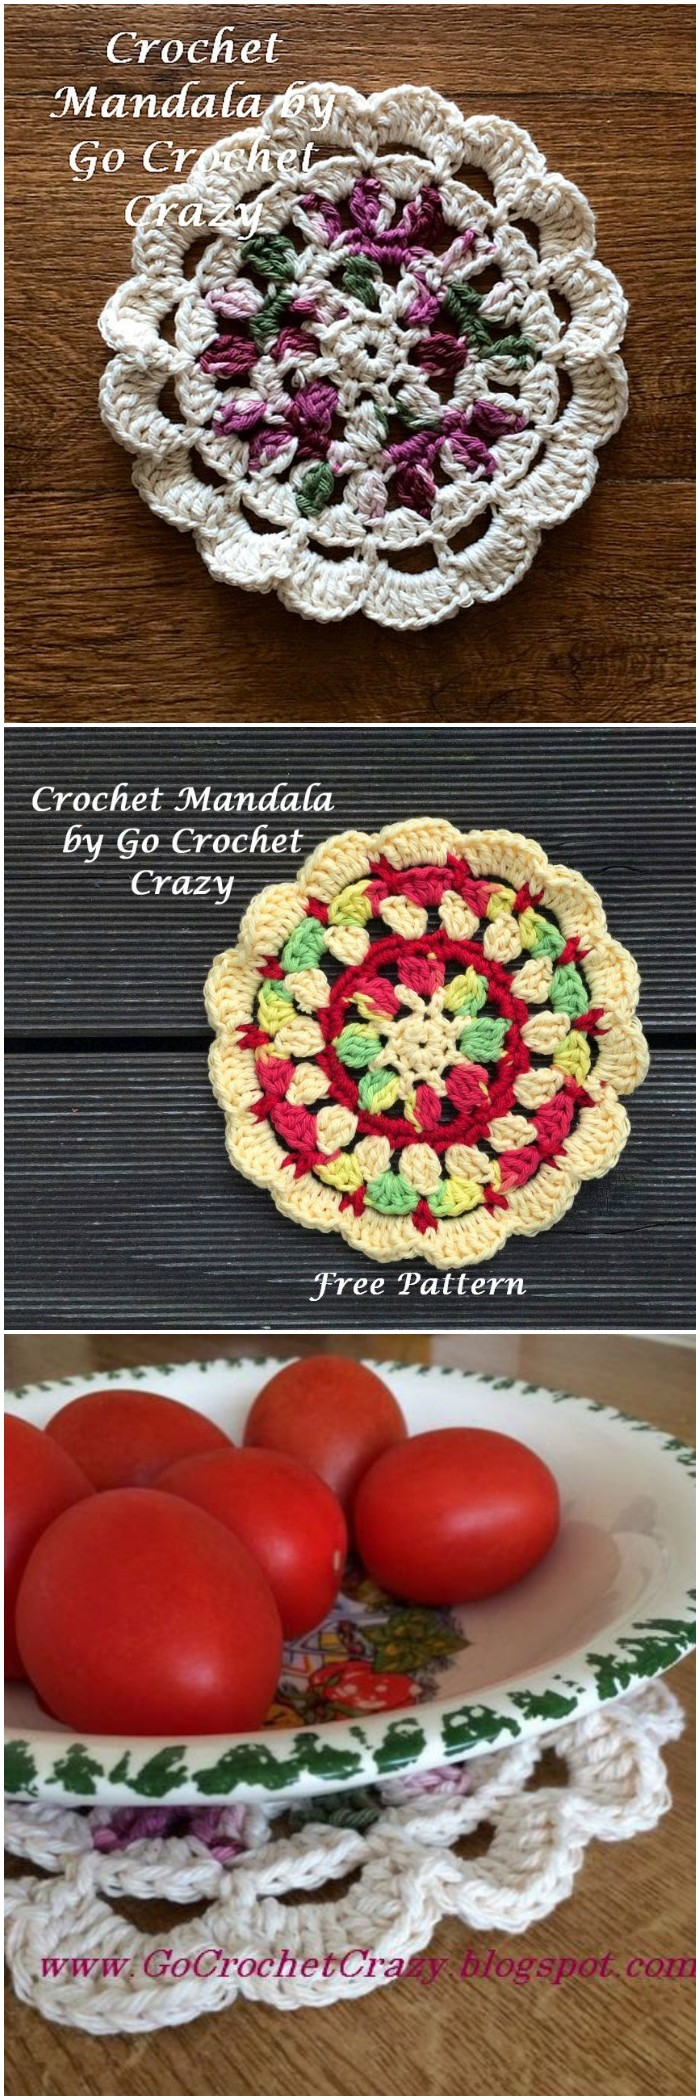 Crochet Mandala Pattern Stunning Free Crochet Mandala Patterns